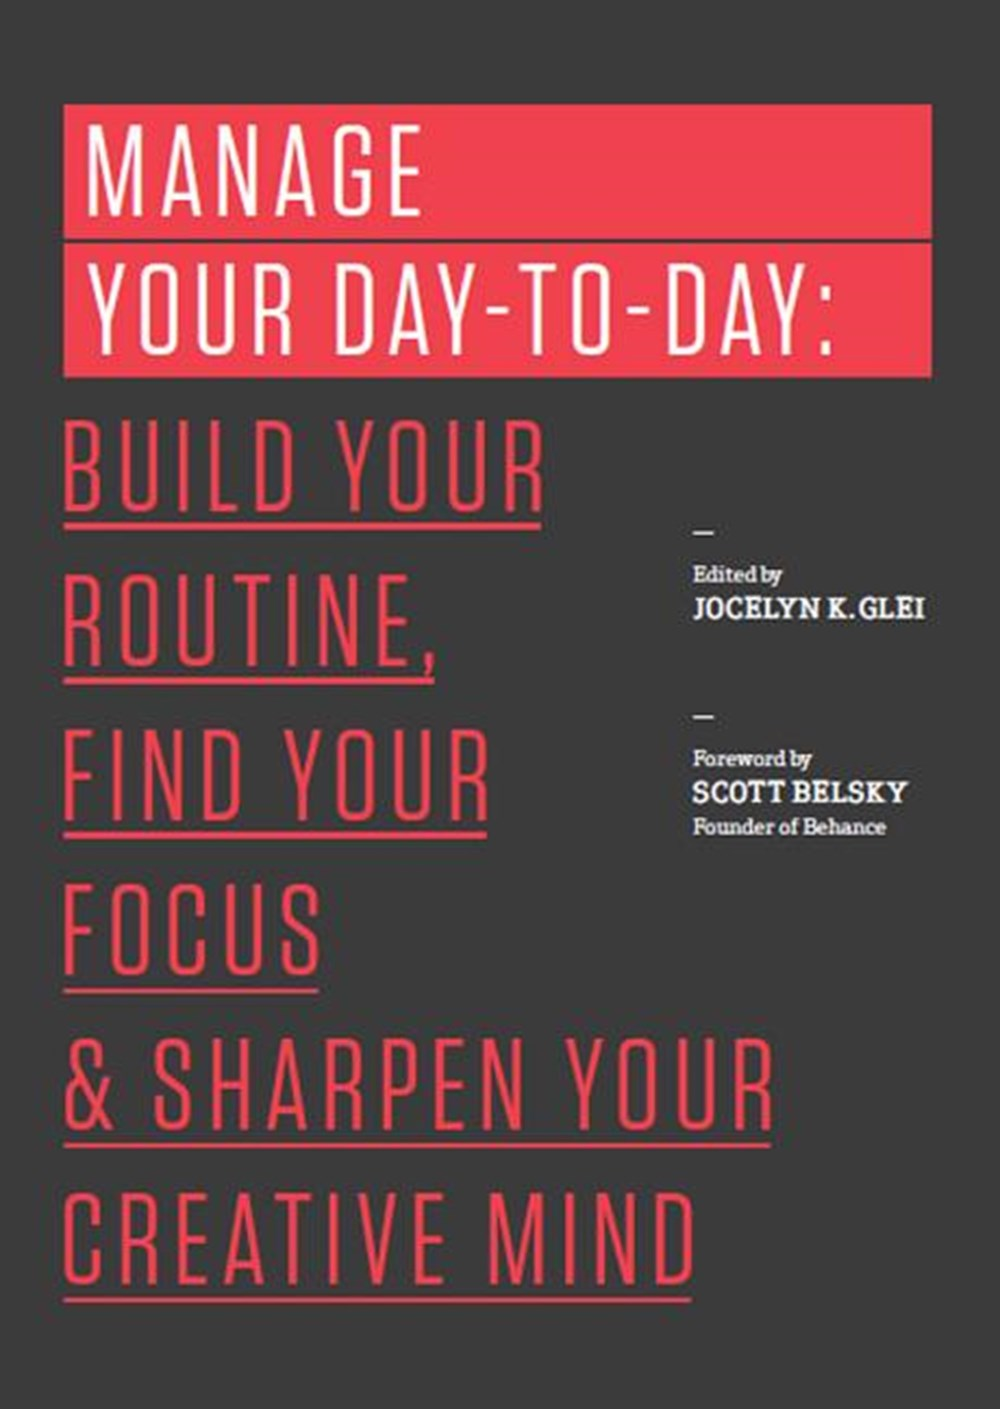 Manage Your Day-To-Day Build Your Routine, Find Your Focus, and Sharpen Your Creative Mind